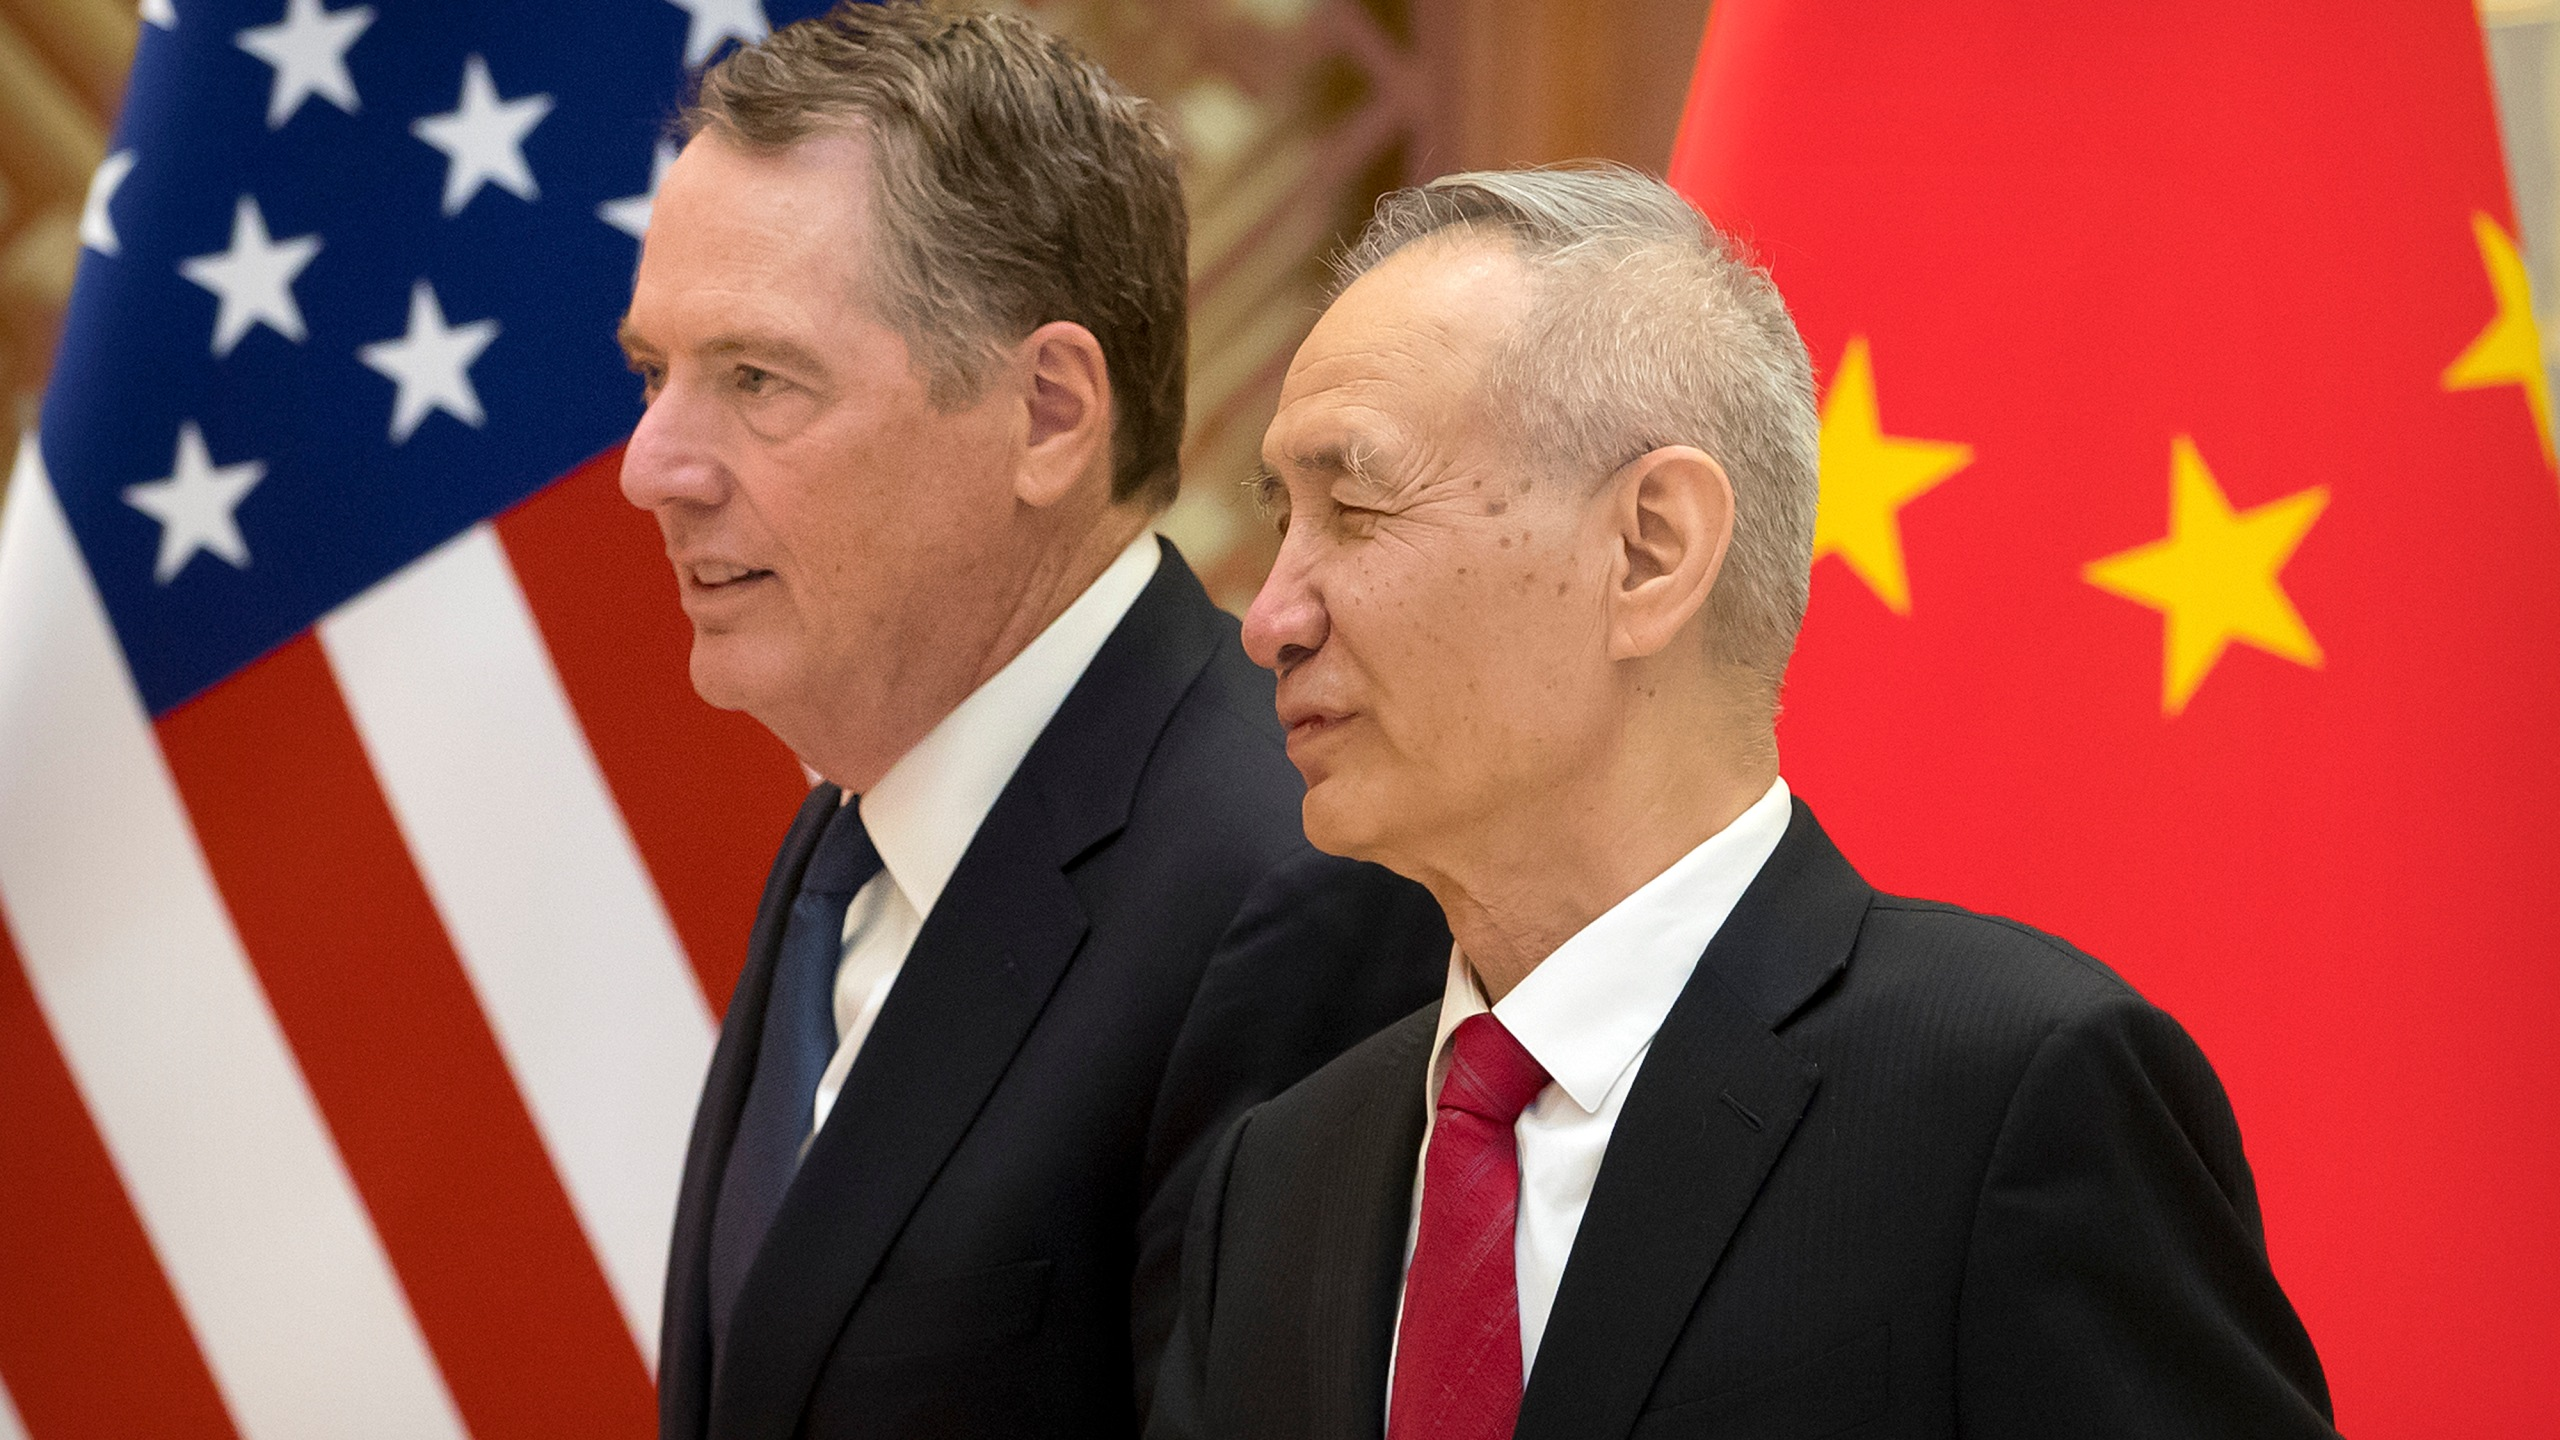 US Trade Representative Robert Lighthizer (L) listens as Chinese Vice Premier Liu He talks while they line up for a group photo at the Diaoyutai State Guesthouse in Beijing on February 15, 2019. (Credit: MARK SCHIEFELBEIN/AFP/Getty Images)